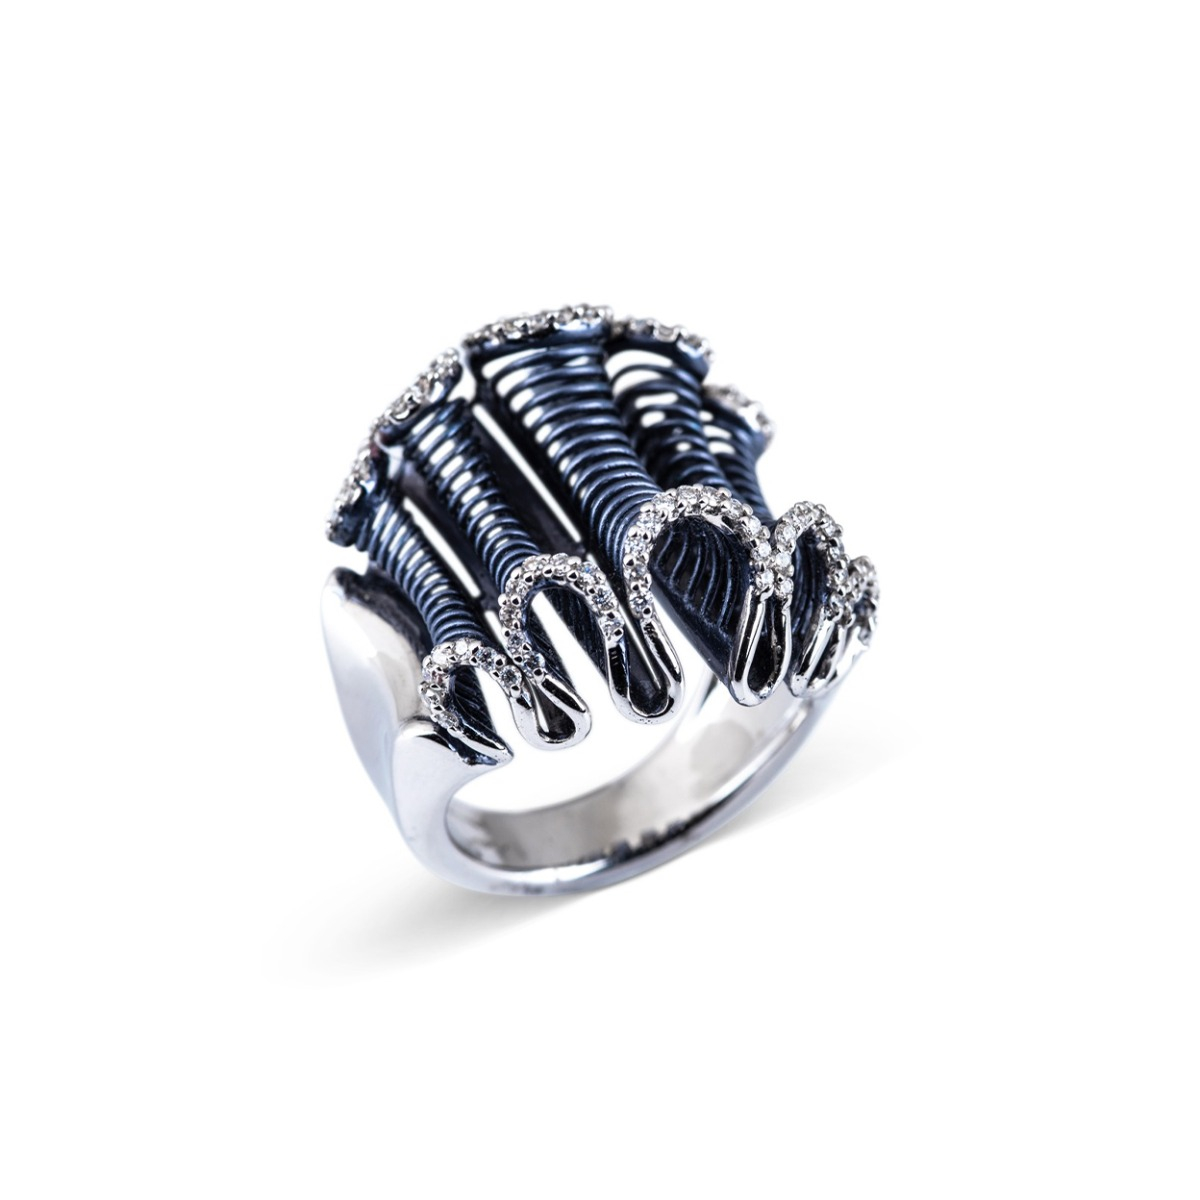 White Gold Ribbon Ring with Diamonds